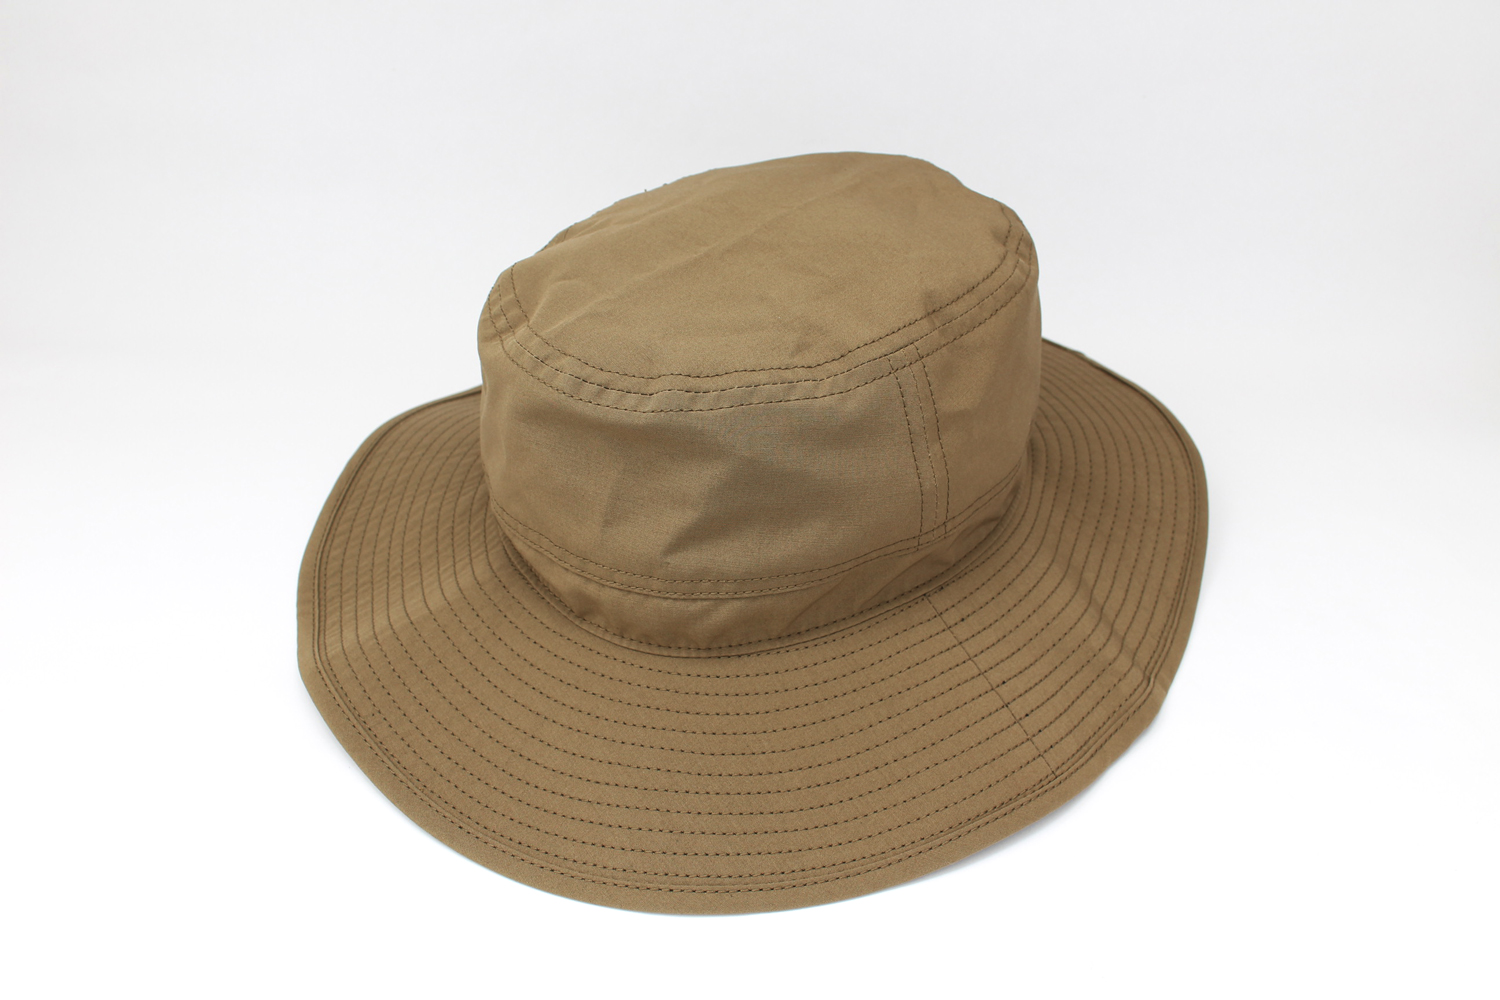 COMESANDGOES_WATER-REPELLENT-HAT-A_Col.BEIGE_9000_1